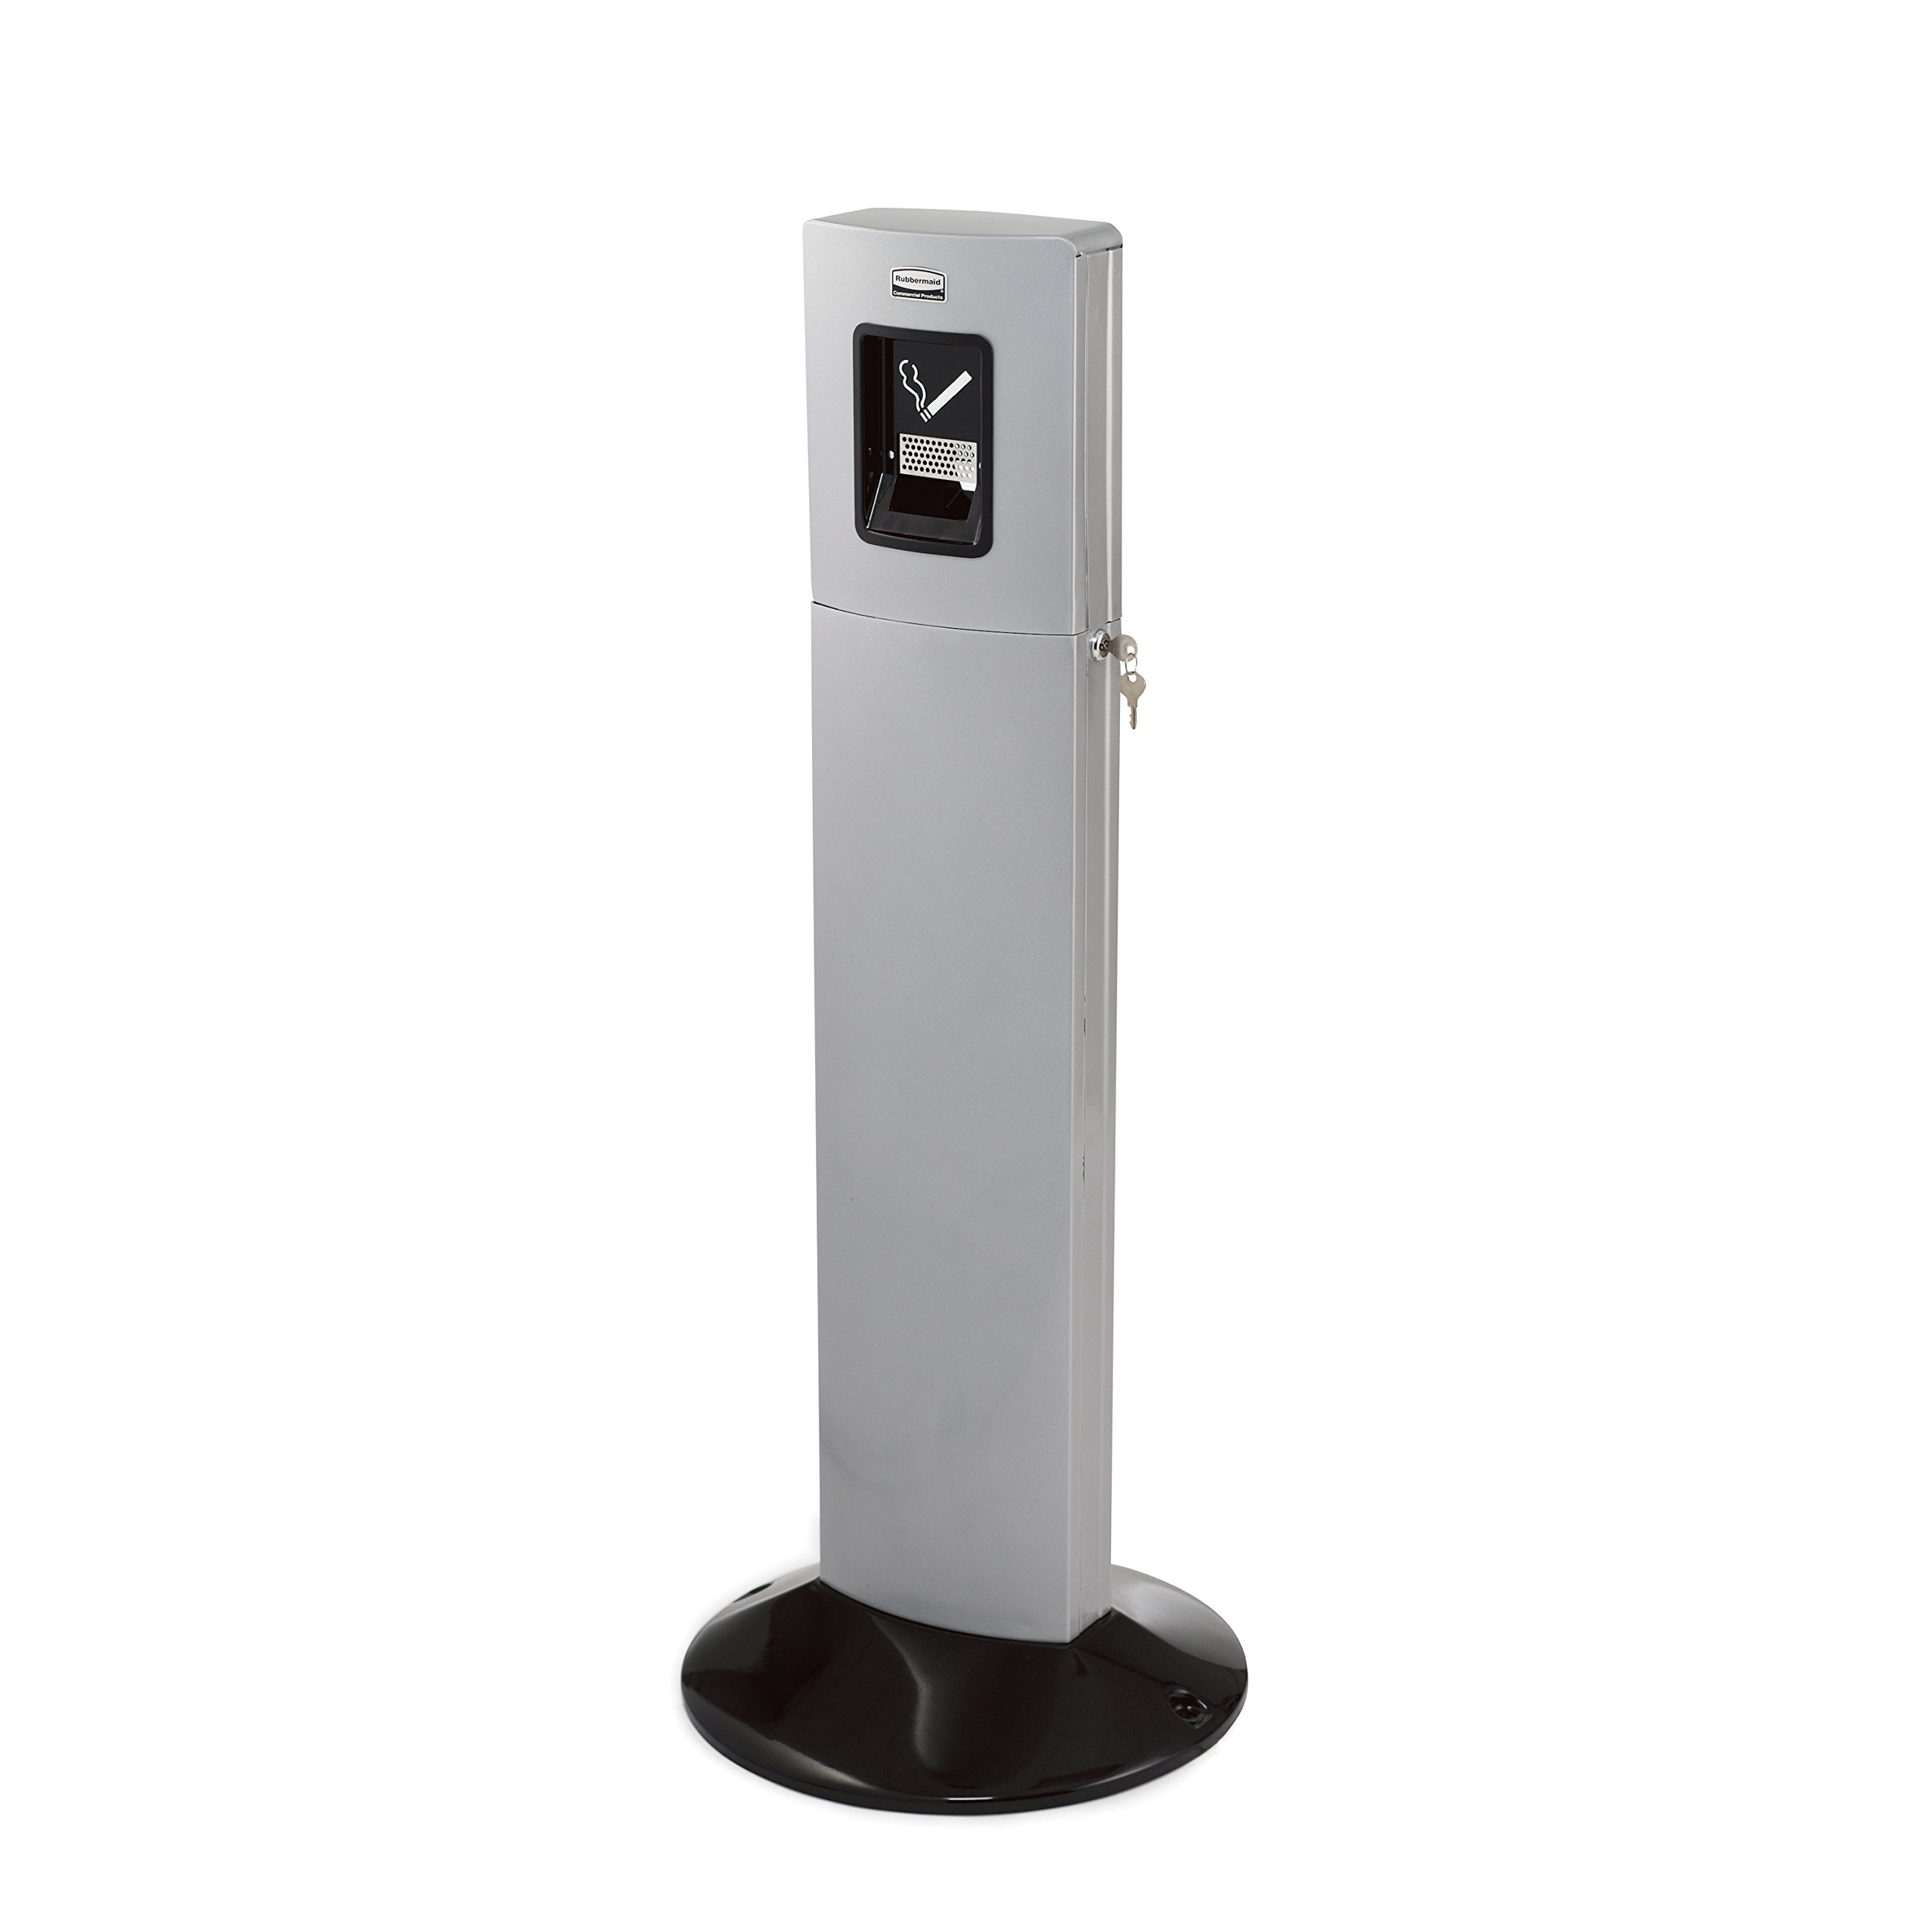 Rubbermaid Commercial Metropolitan Smokers Station, 1-3/5 Gallon, Silver Metallic, FGR93400SM by Rubbermaid Commercial Products